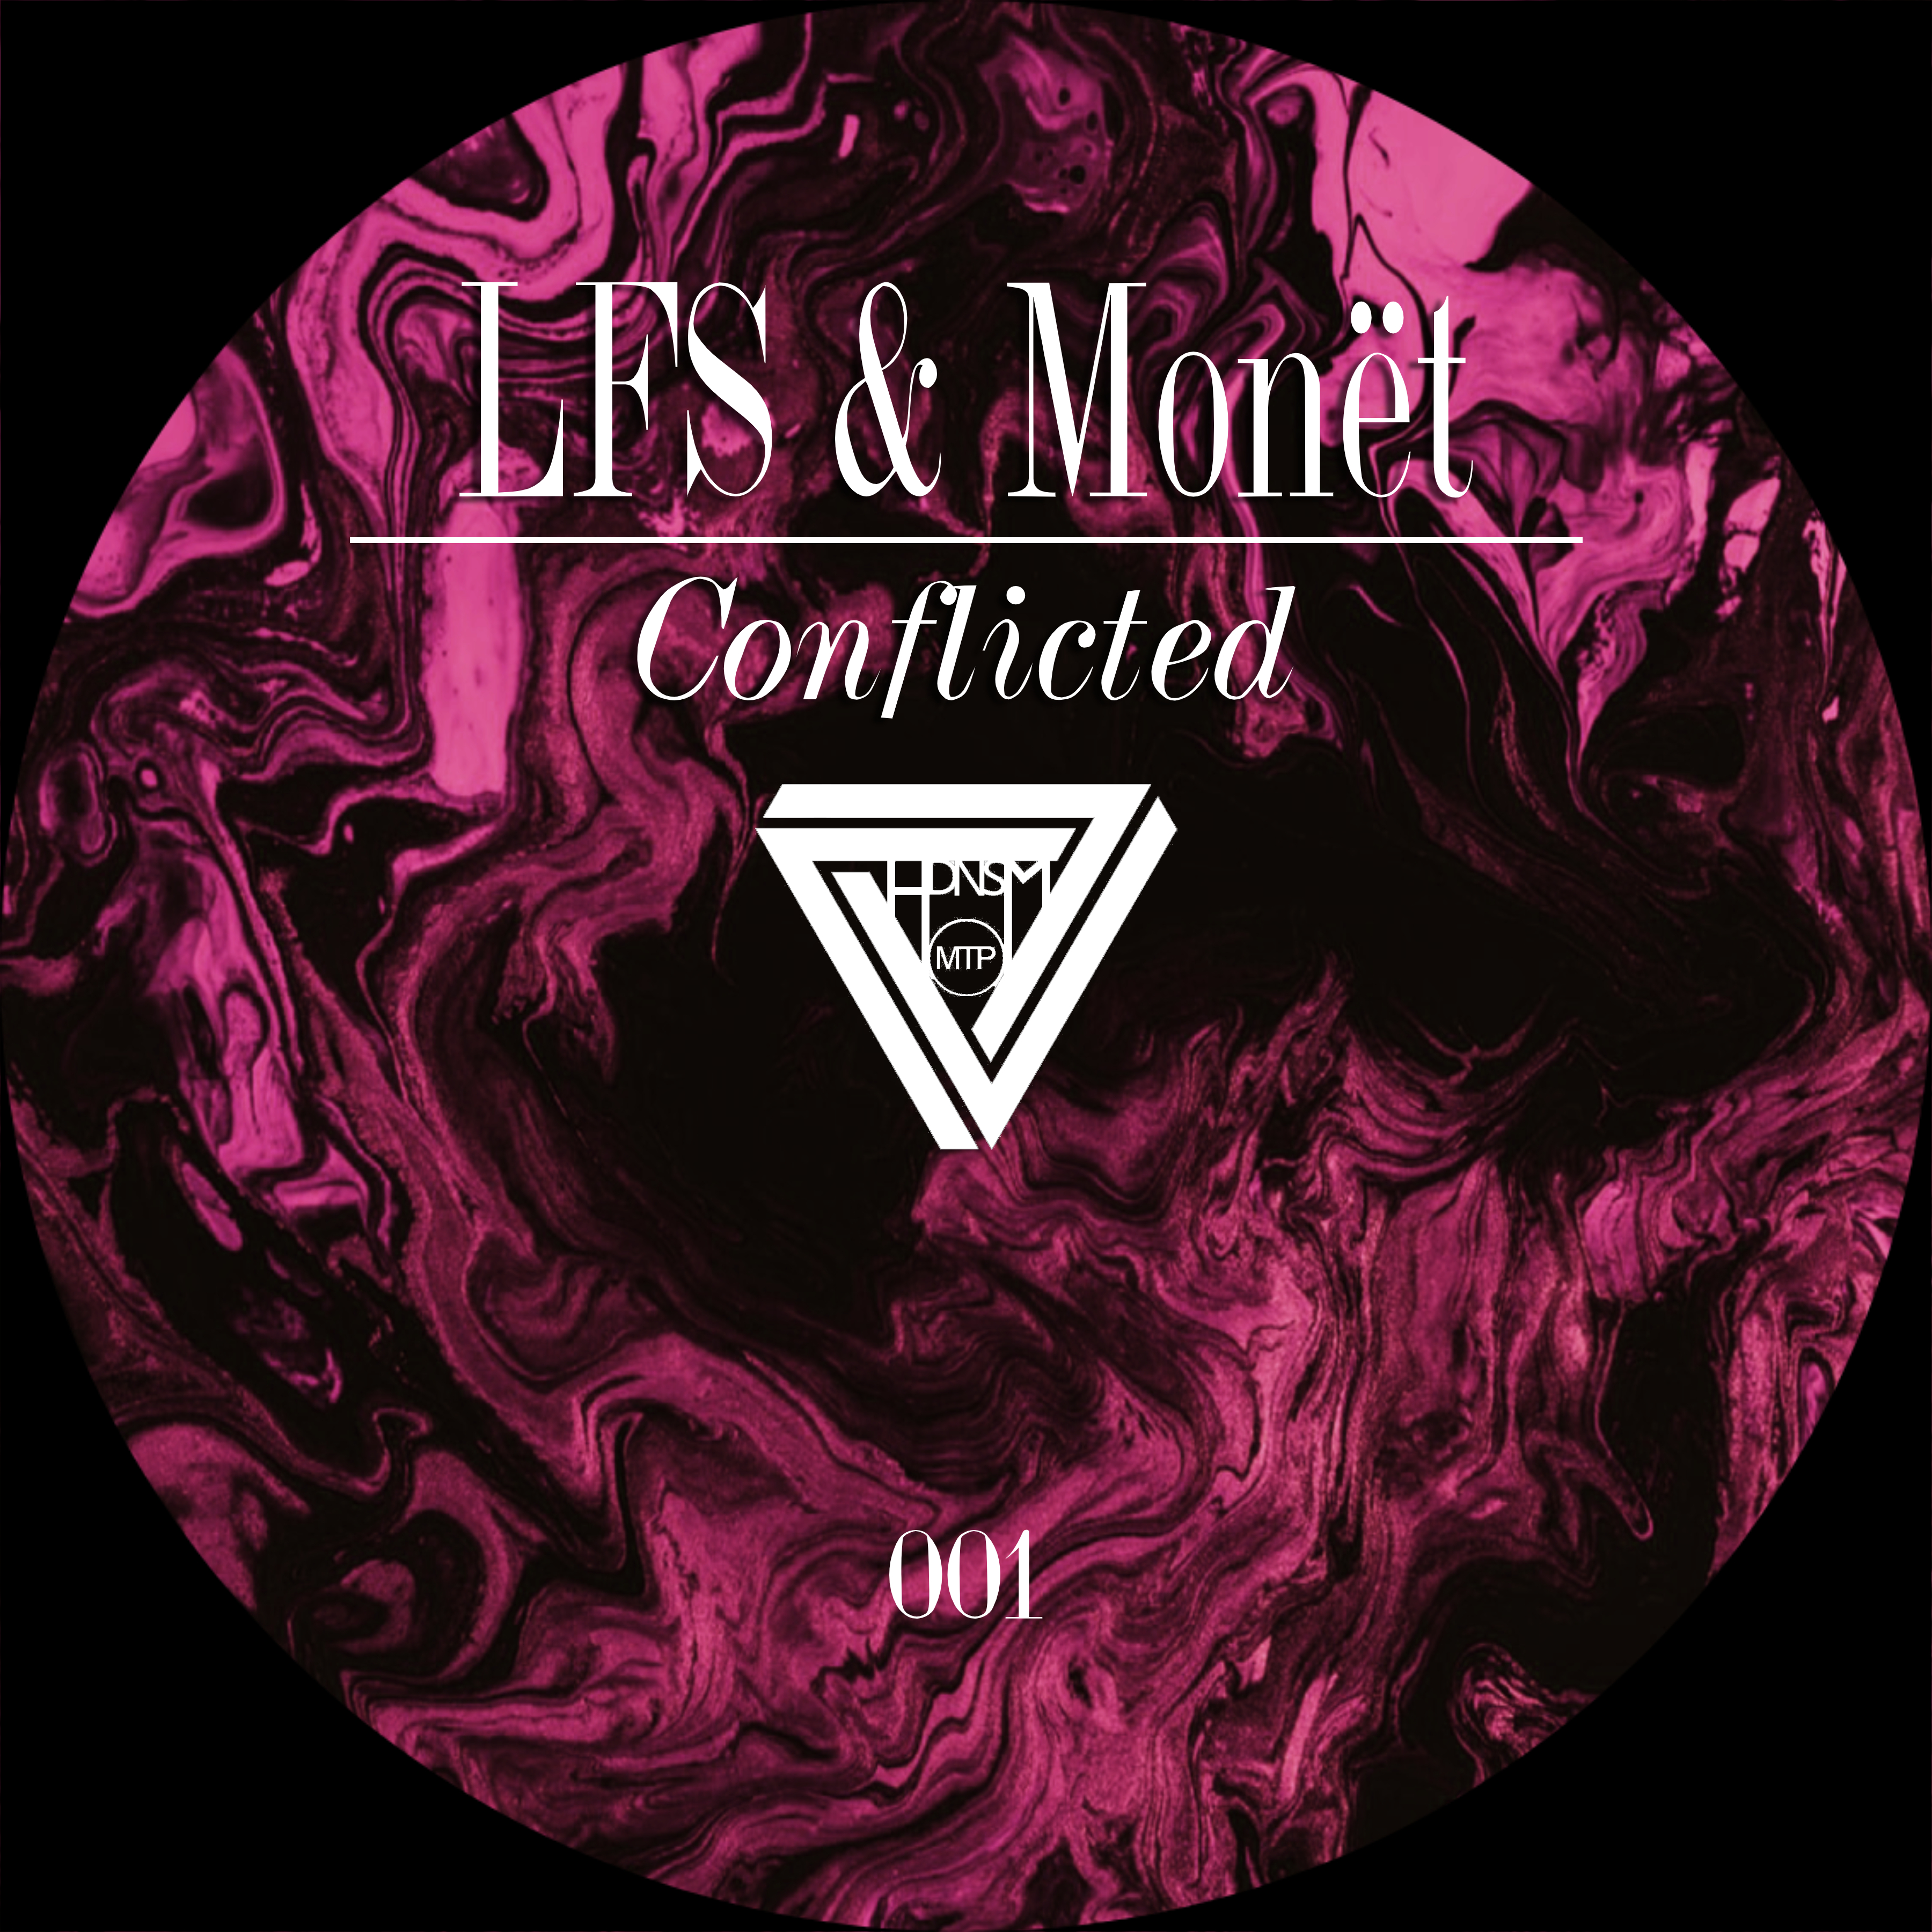 LFS & Monët - Conflicted (Original Mix).